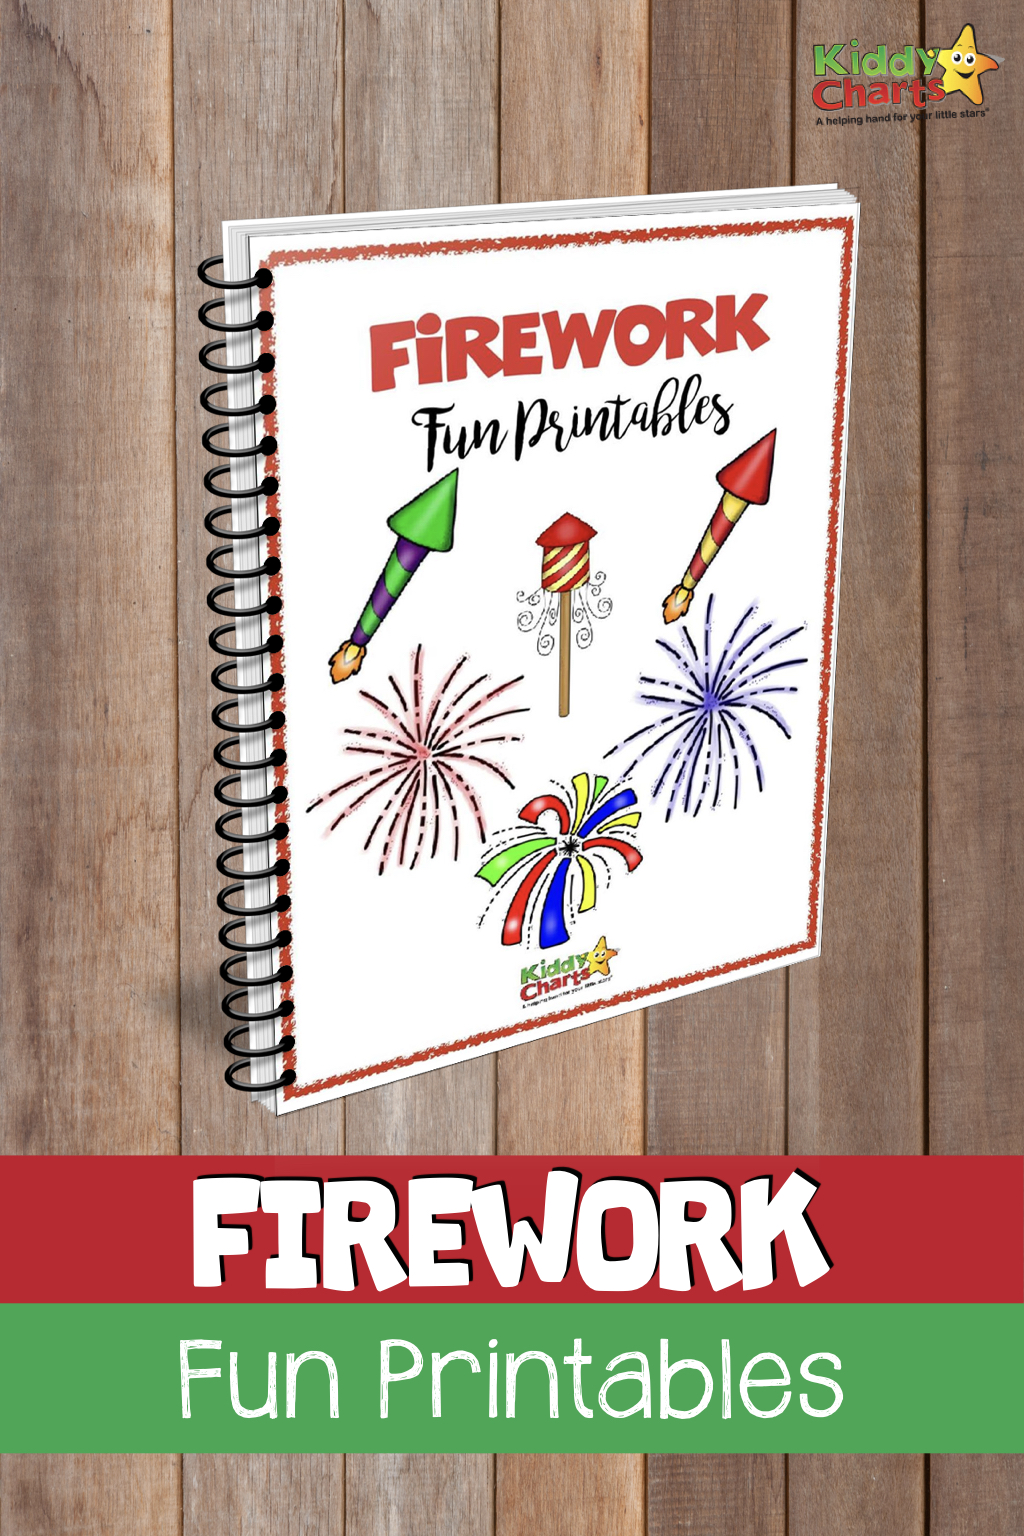 We have a gorgeous mini eBook of free firework resources and printables for the Fourth of July, and Bonfire Night; download it, you and the kids will LOVE it!